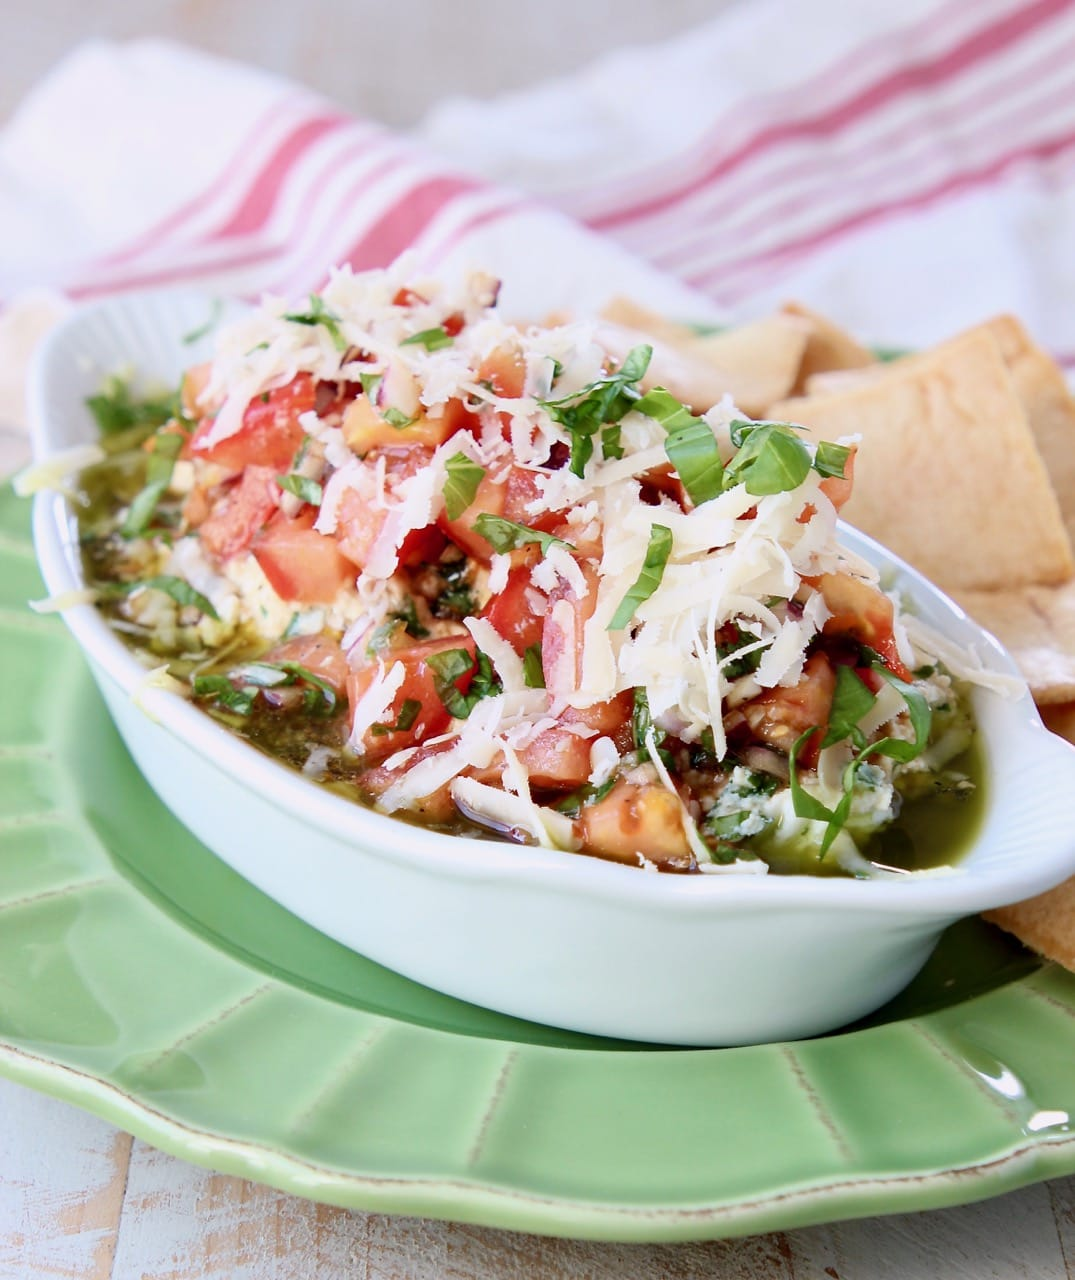 Italian 5 Layer Dip in white oval serving dish, on top of green plate with pita chips and red and white striped towel in background